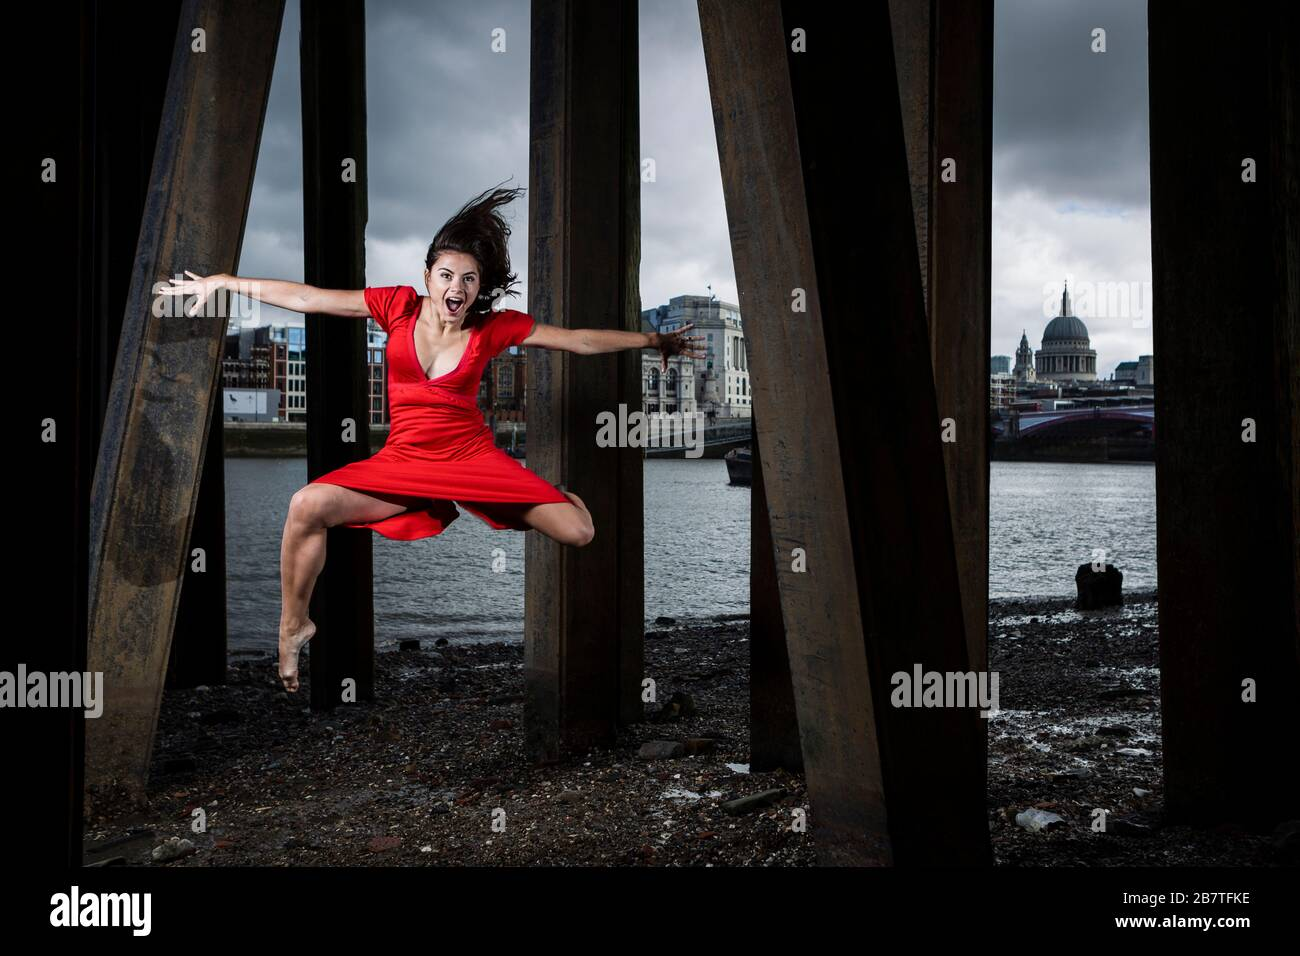 Female Dancer Leaping Mid Air under Pier, London, South Bank Stock Photo